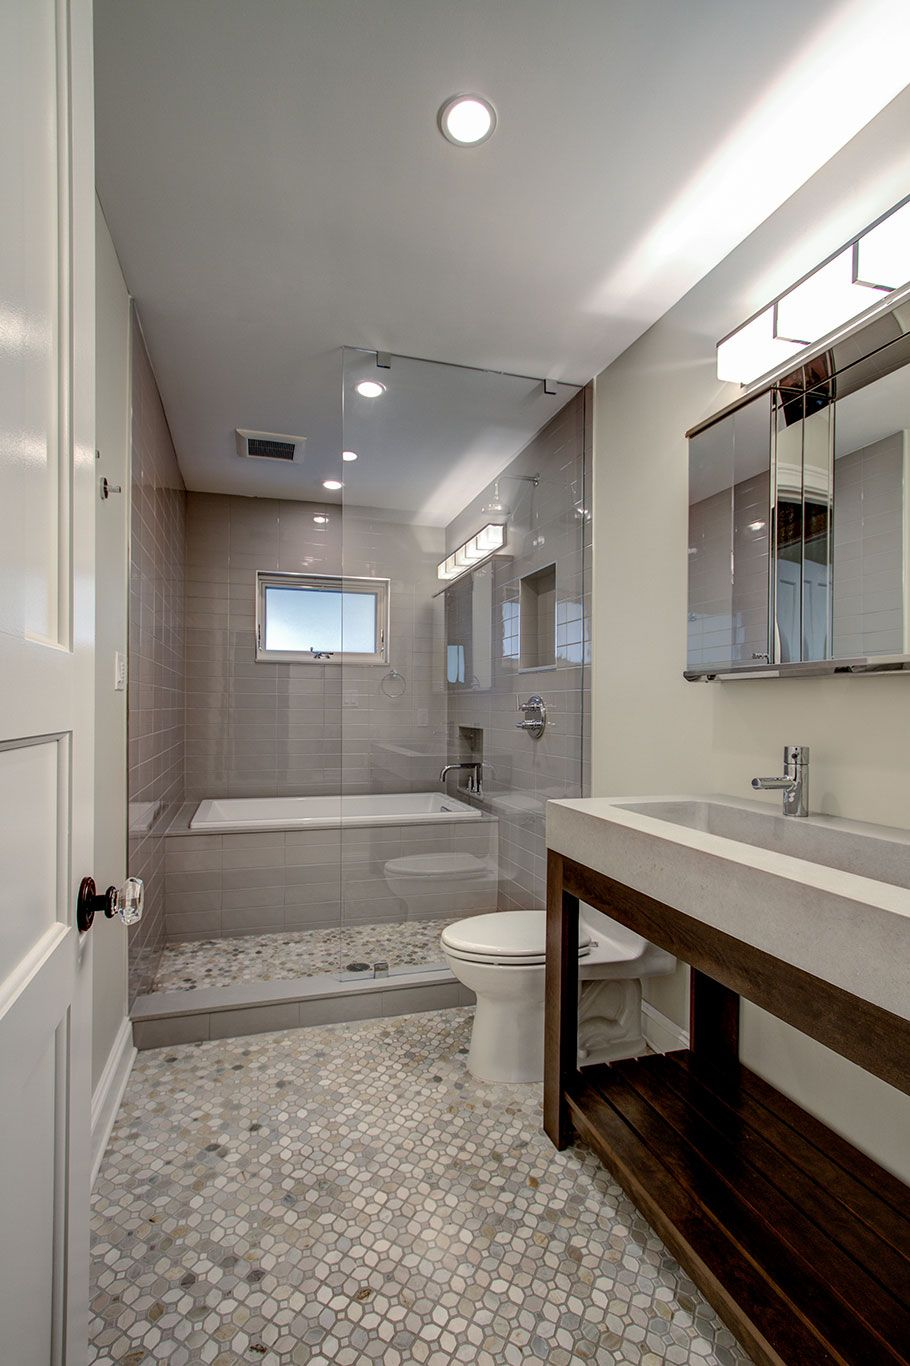 Guest Bathroom With Tub Enclosed Within Glassed In Shower